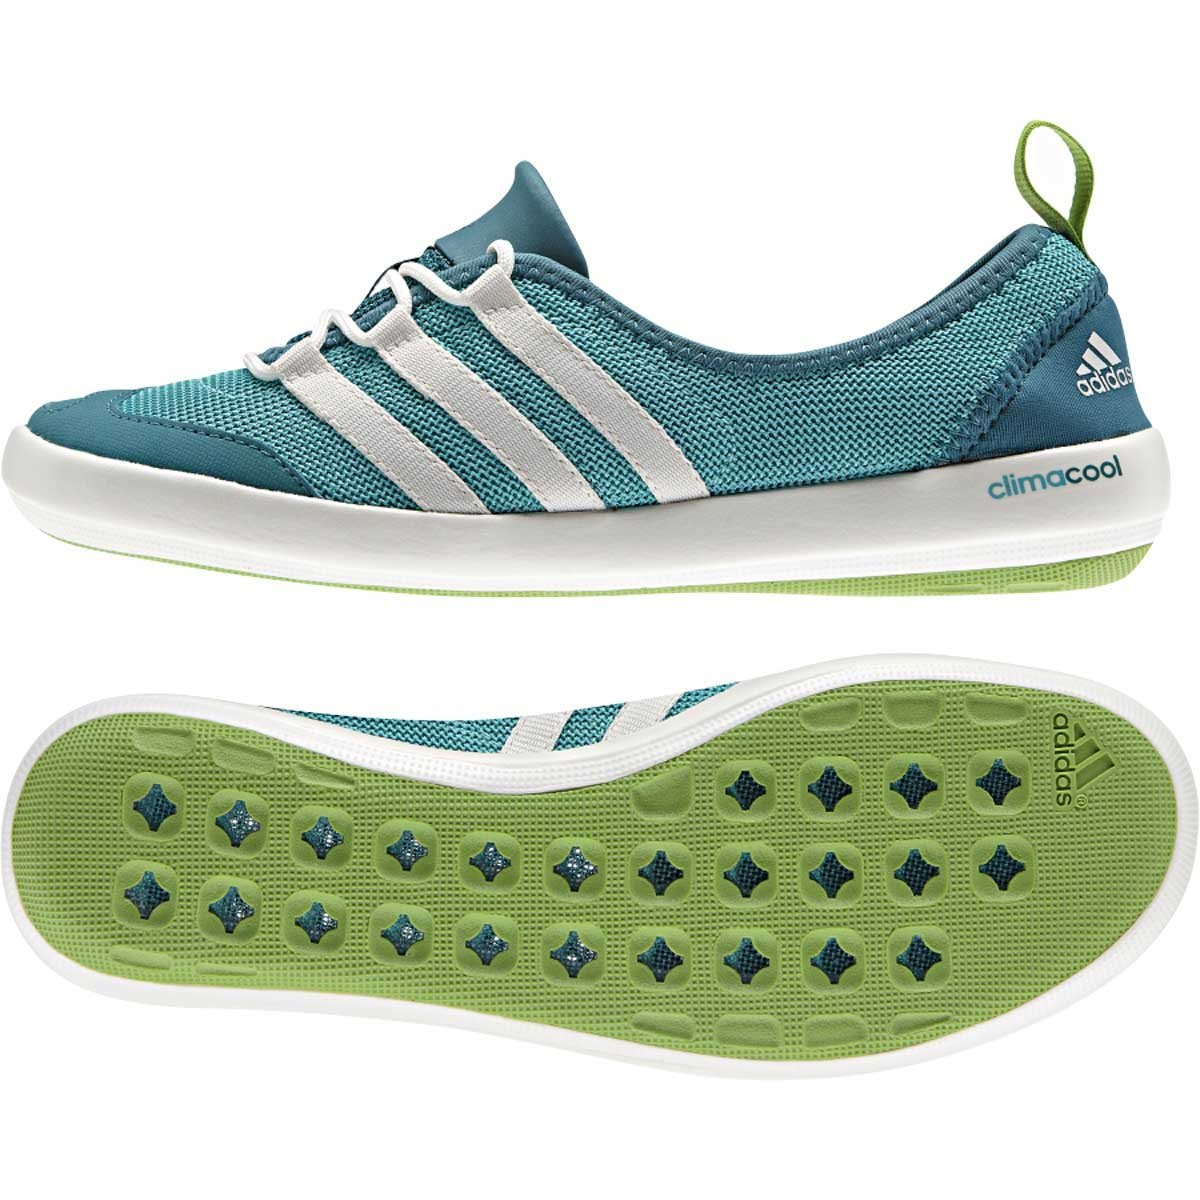 c39df0a2379e01 ... usa adidas climacool boat sleek water shoes semi solar slimechalkpower  teal ce08f eb725